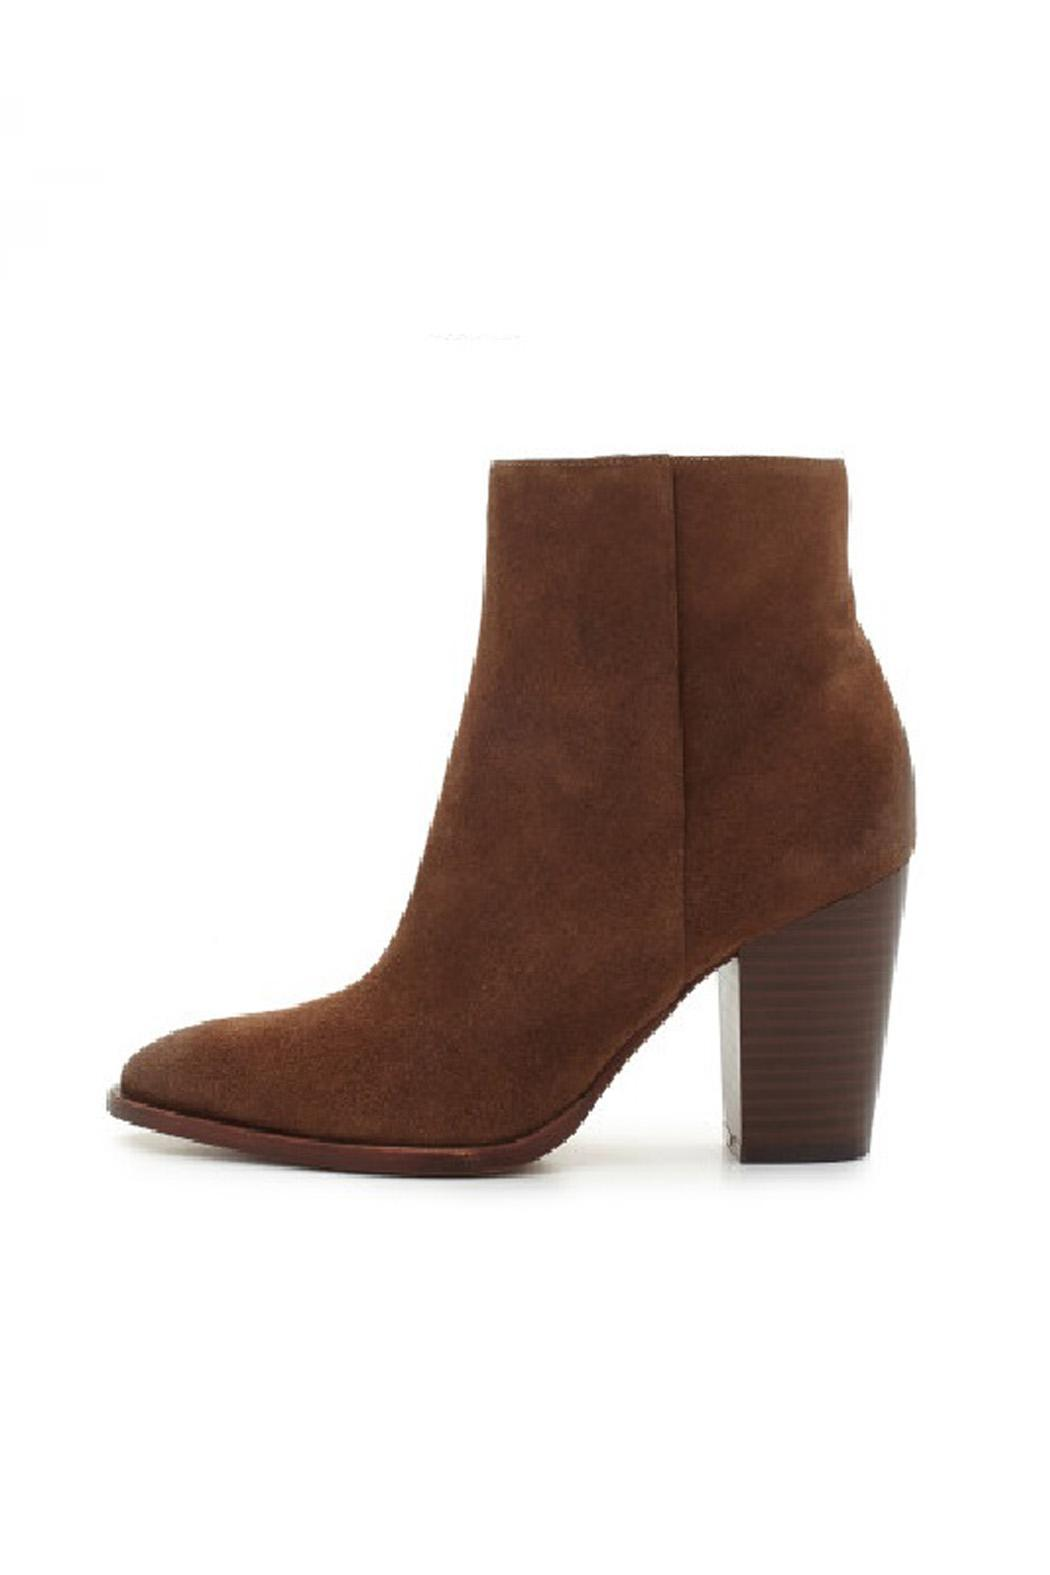 54ae7da0ed7345 Sam Edelman Brown Blake Bootie from South Carolina by Baehr Feet ...